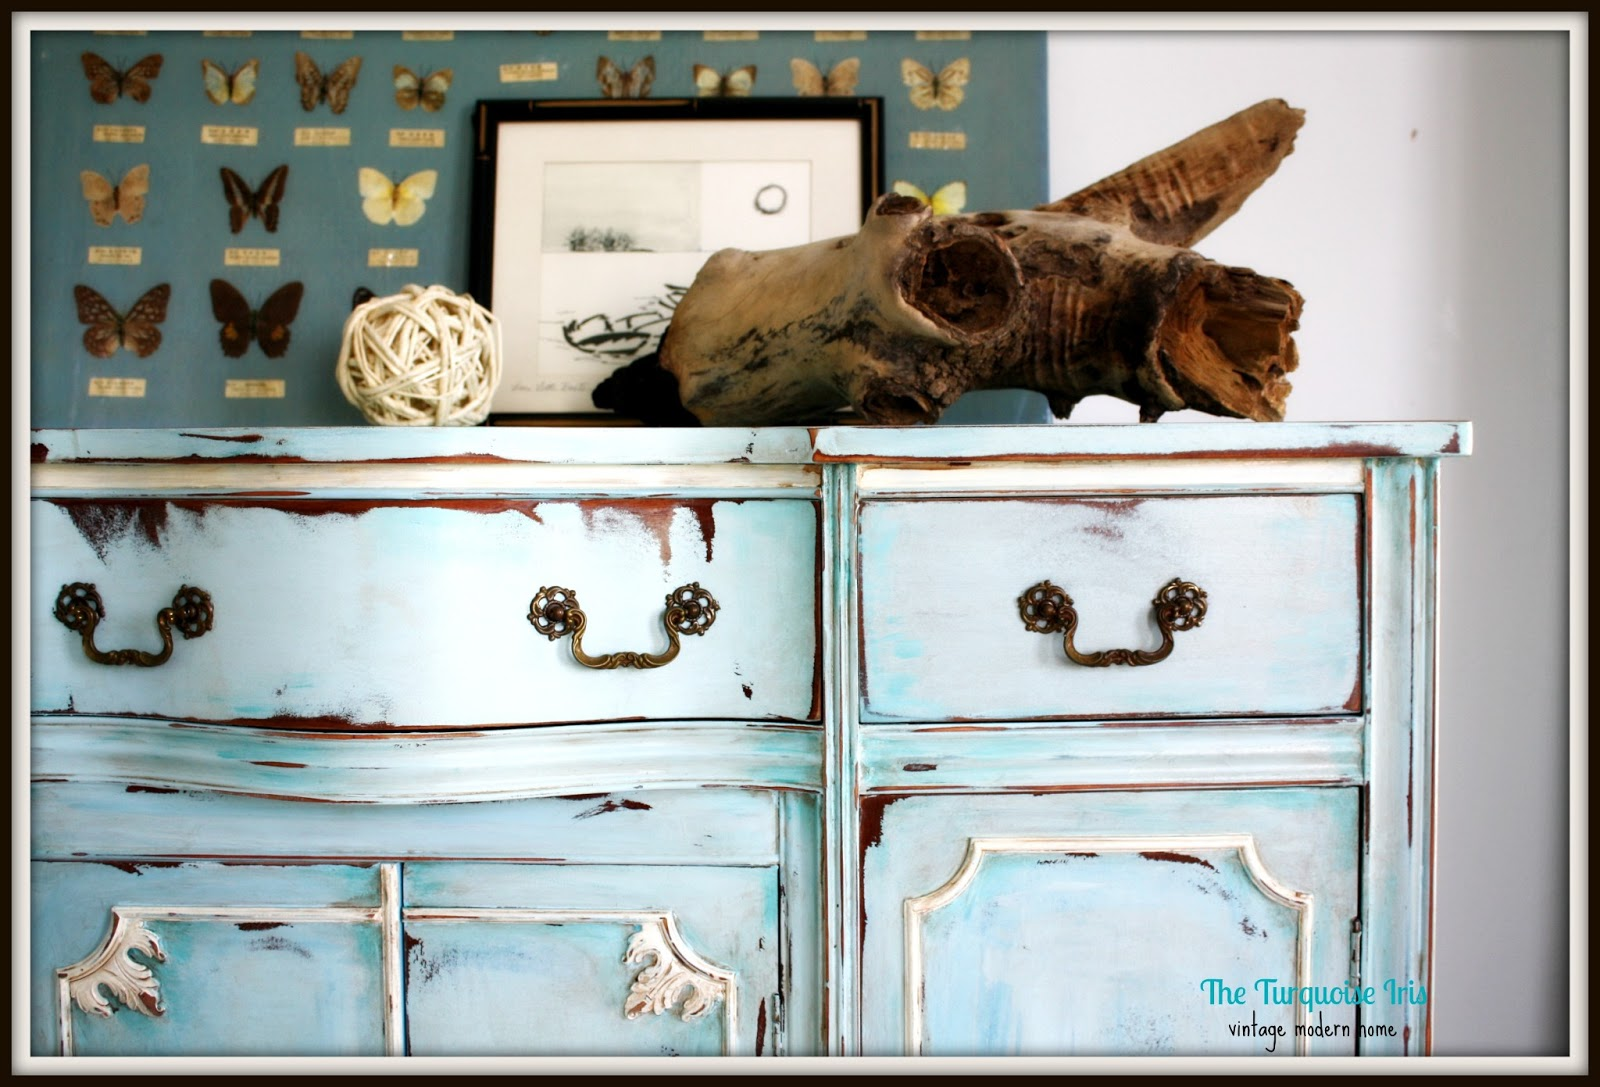 The Turquoise Iris Furniture Art Vintage Buffet In China Blue And Creme